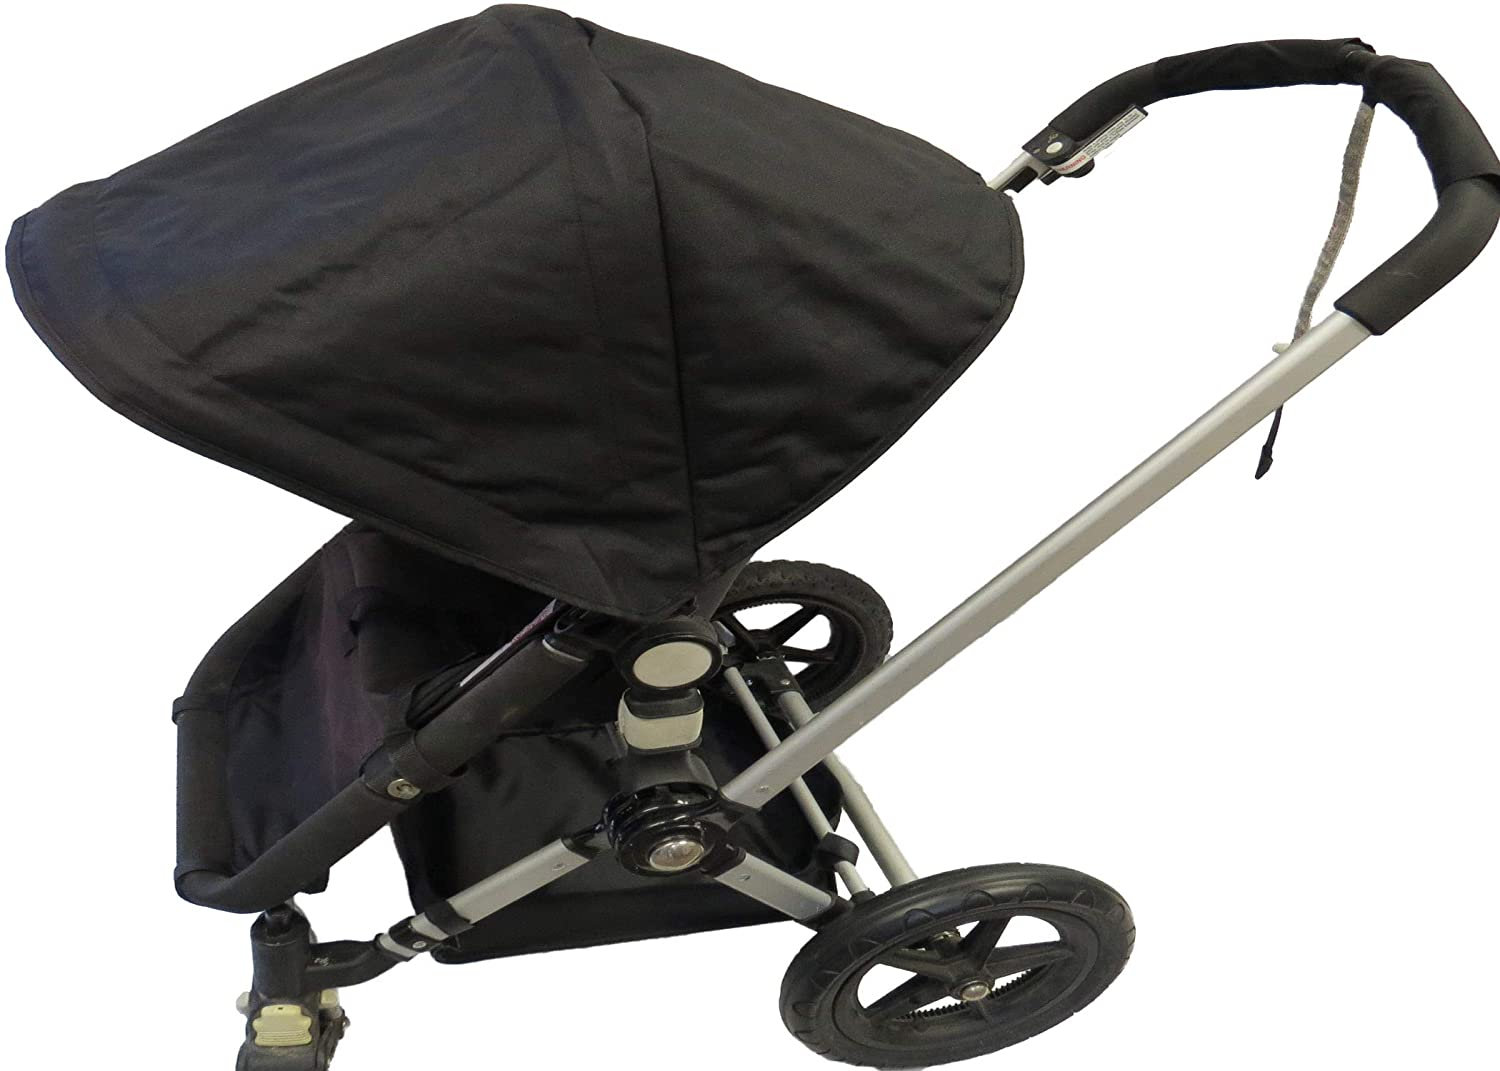 Black Sun Shade Canopy with Wires and Under Seat Storage Basket Plus Free Handle Bar Covers for Bugaboo Cameleon 1, 2, 3, Frog Baby Child Strollers